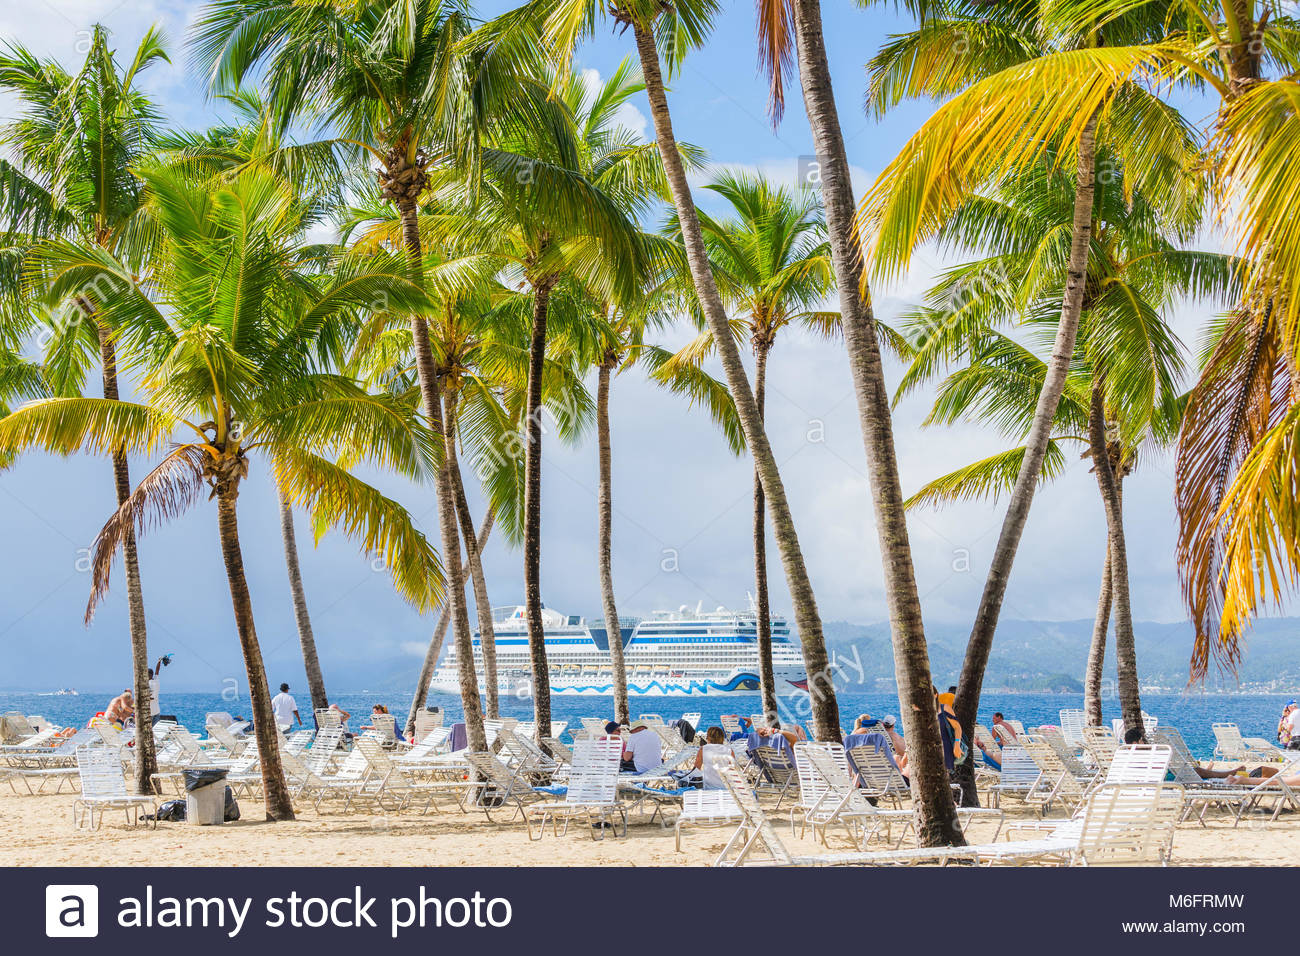 Island Bacardi ( Cayo Levantado), Samana, Dominican Republic. January 2018. Beautiful and bright island in the Samana - Stock Image